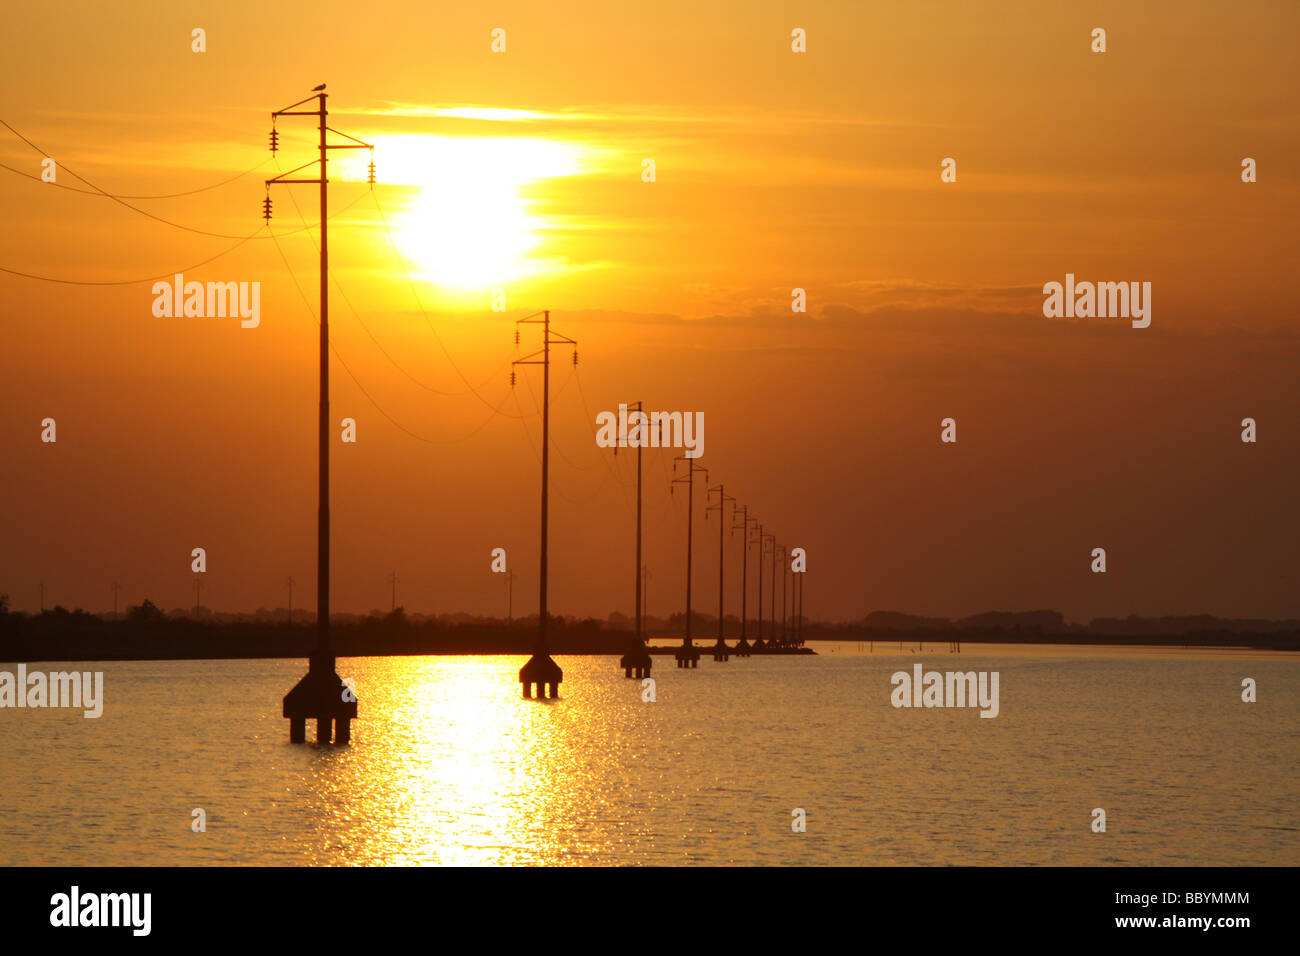 Sunset and silhouetted power cables pylons, supplying albarella island, italy - Stock Image